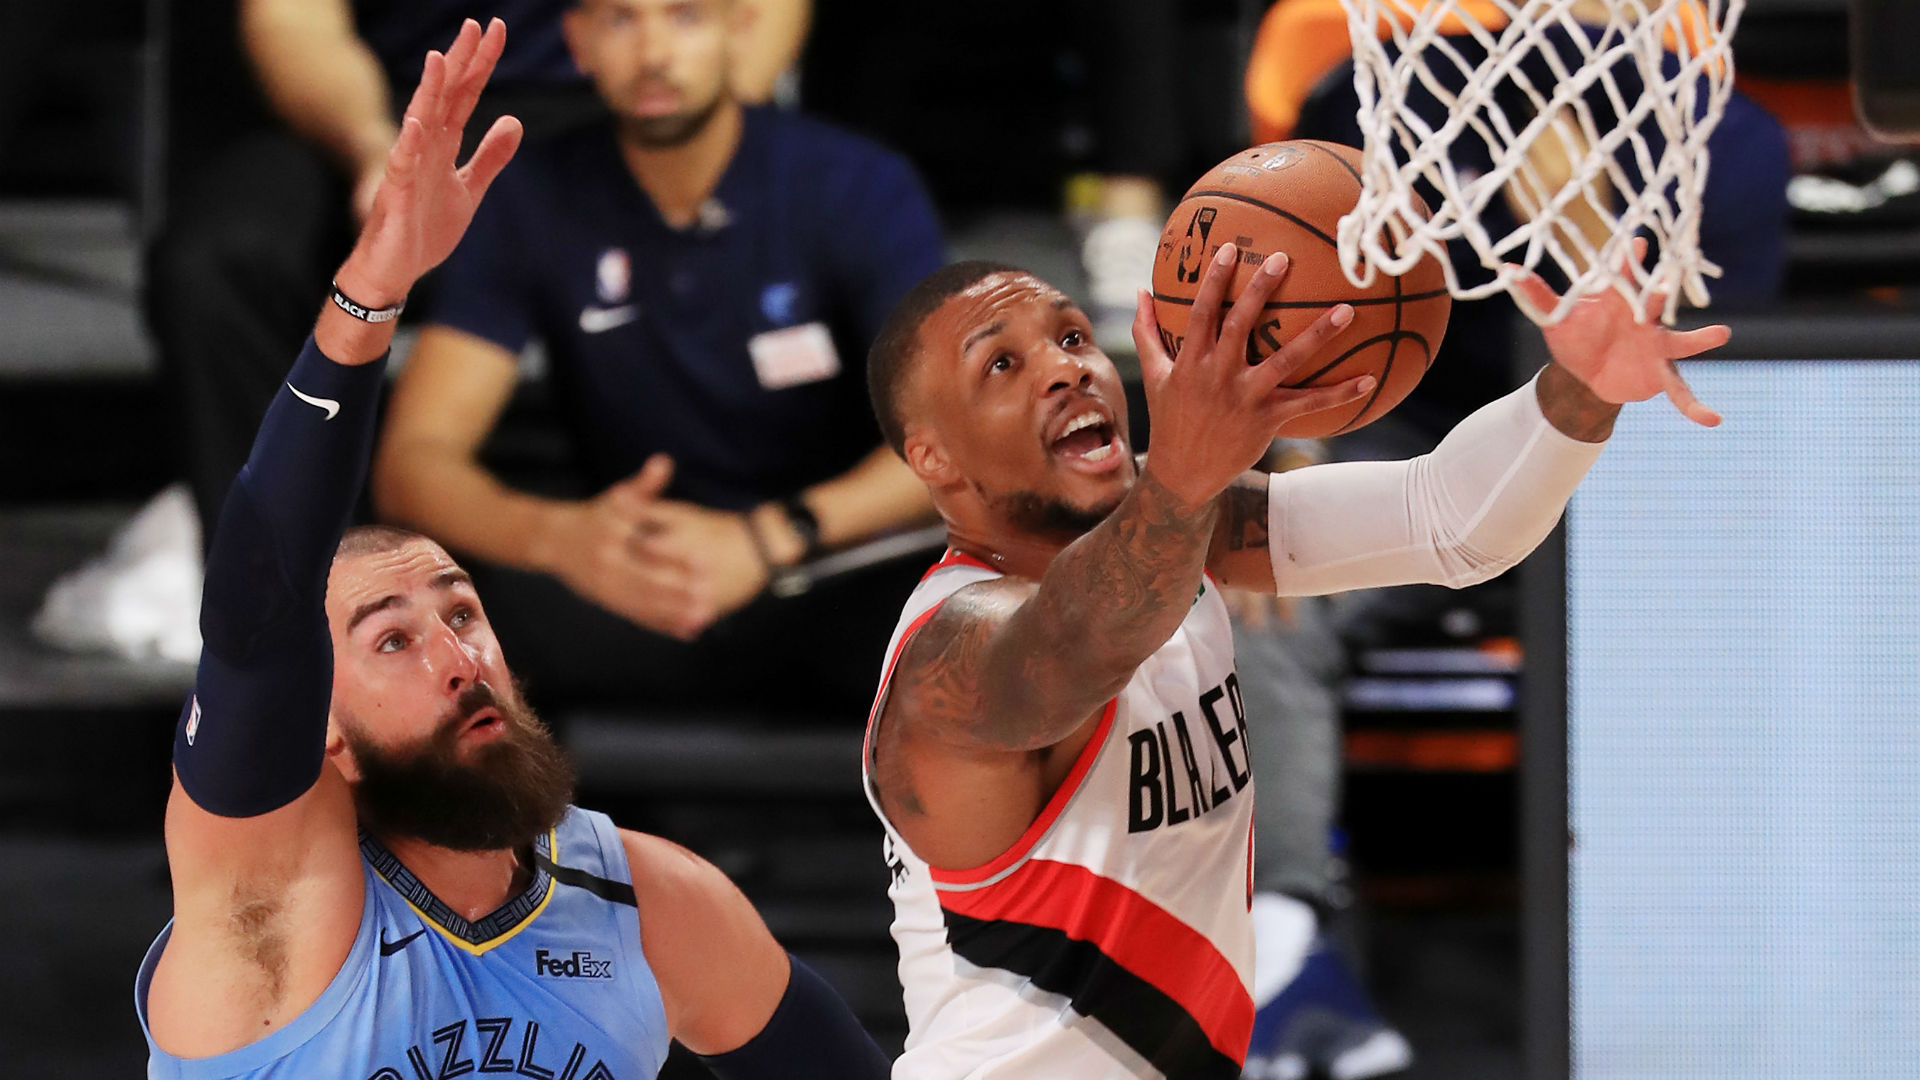 NBA playoff standings 2020: Updated odds for Grizzlies, Trail Blazers & other teams to clinch No. 8 seed in West